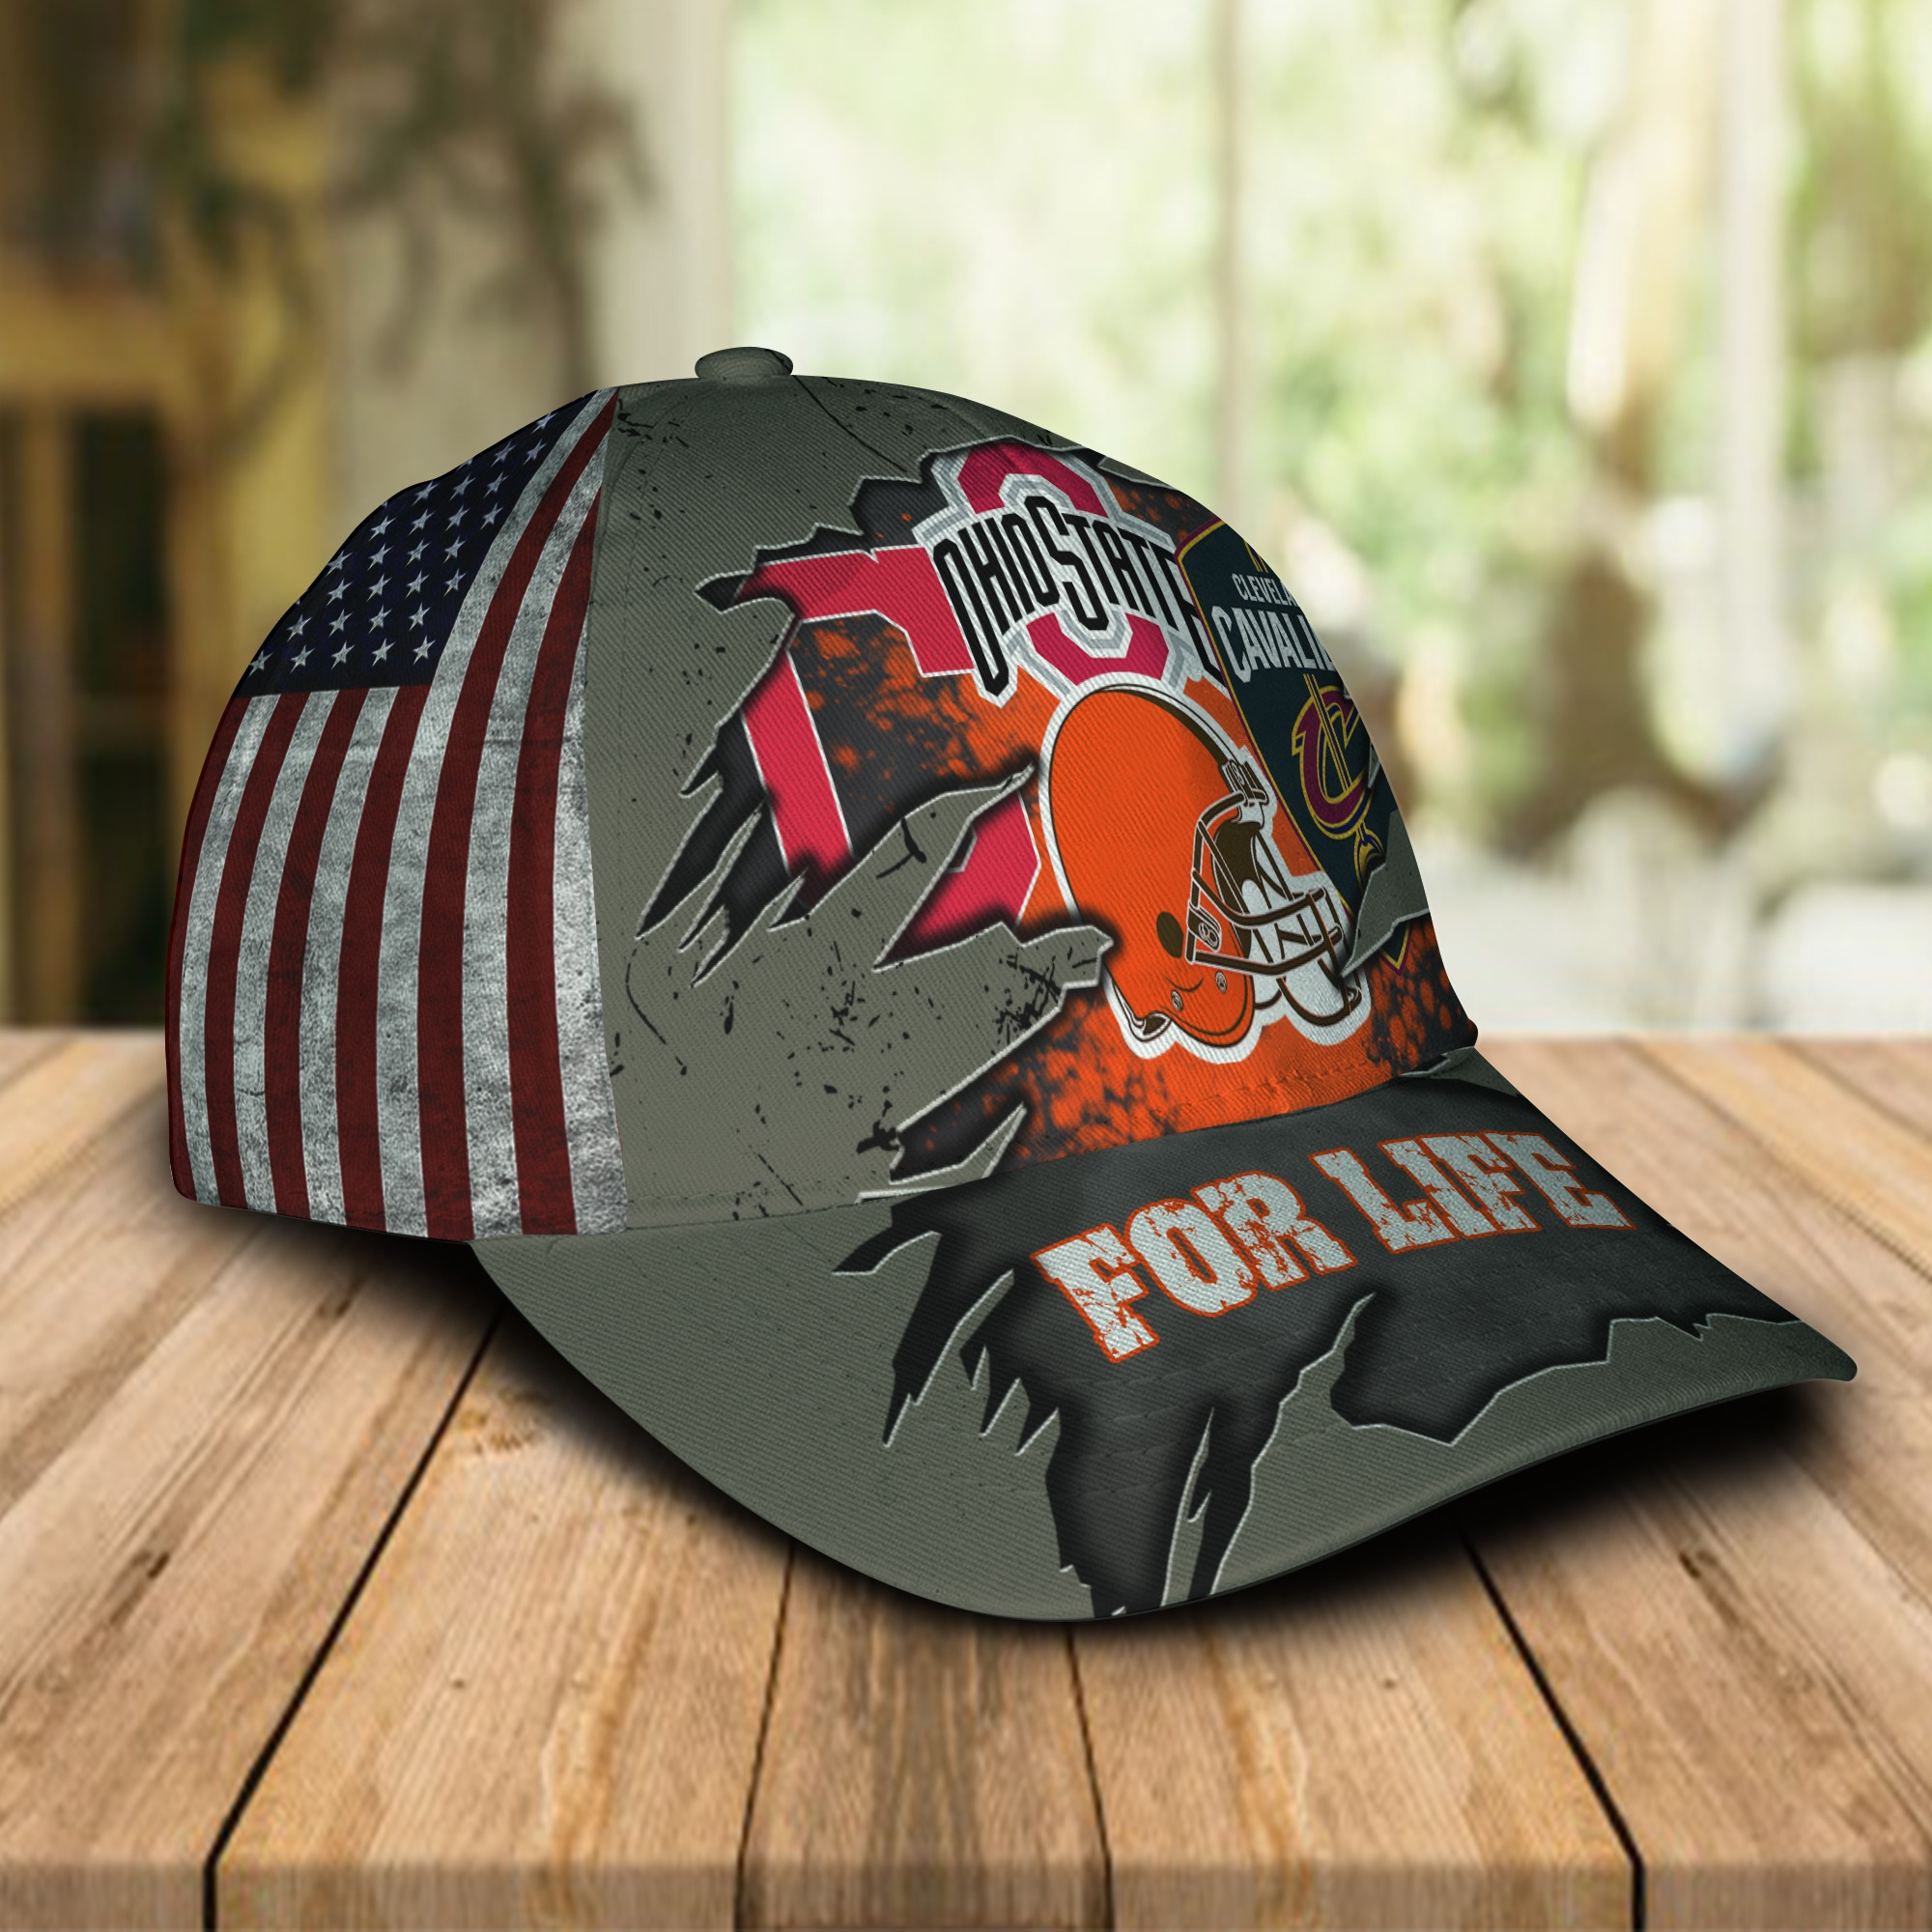 Ohio State Buckeyes Cleveland Cavaliers Cleveland Indians Cleveland Browns for life cap 1